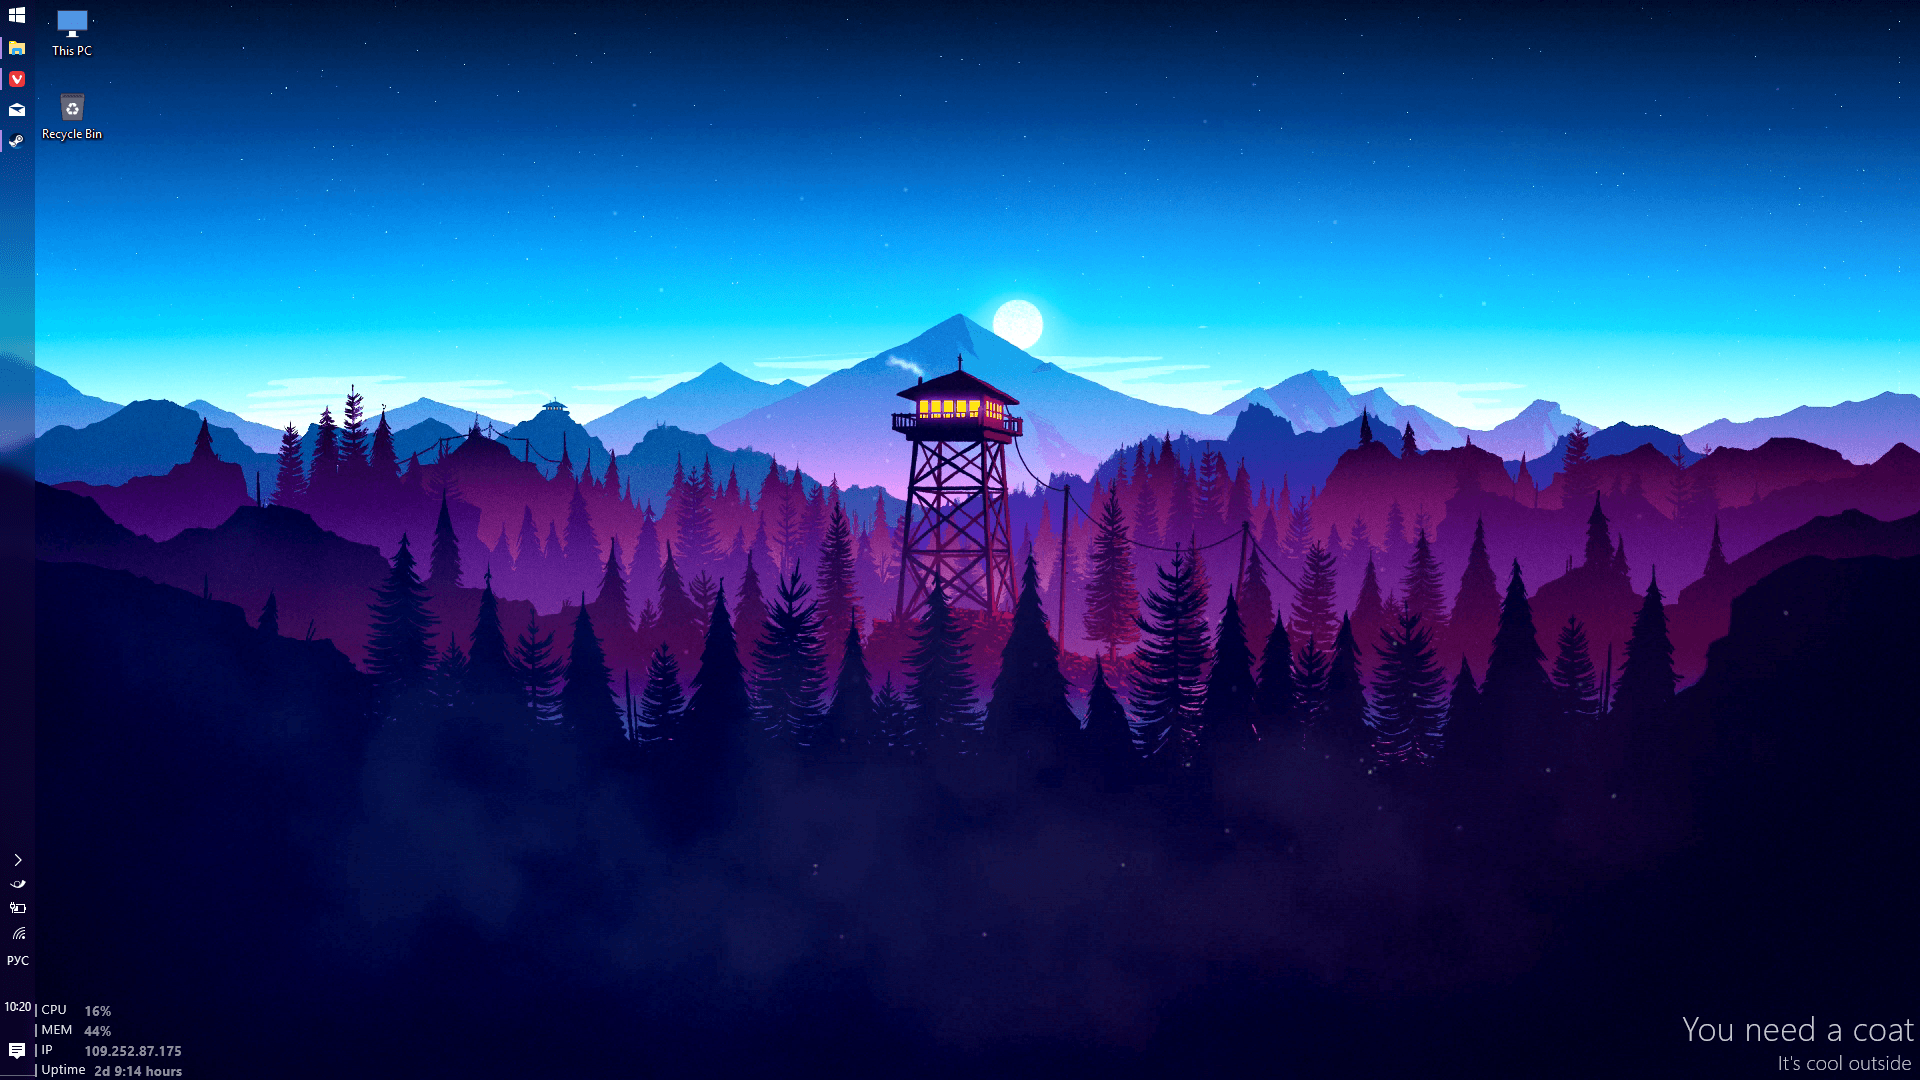 Clean PC Wallpapers on WallpaperDog 1920x1080